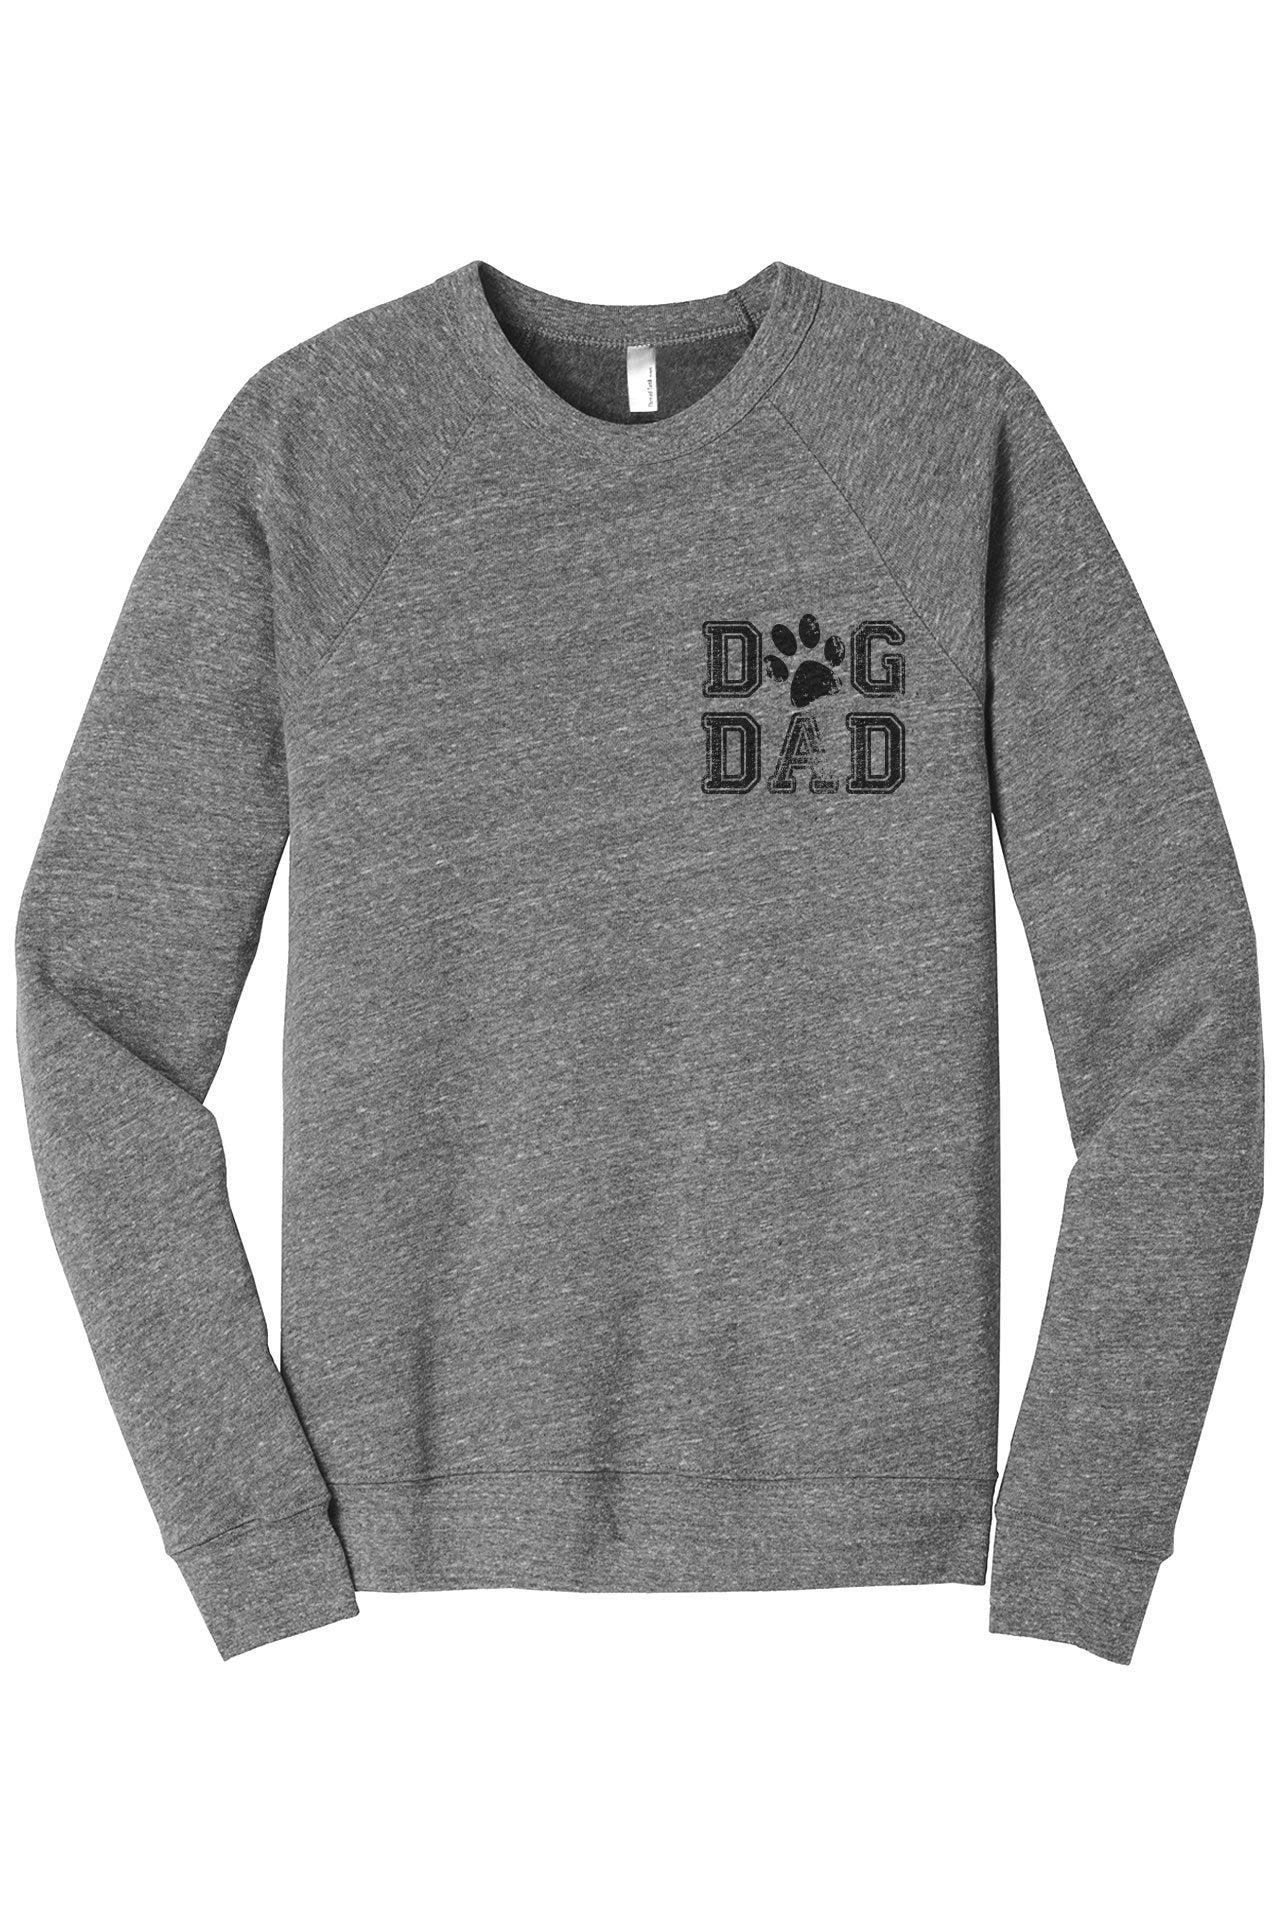 Dog Dad Cozy Unisex Fleece Longsleeves Sweater Heather Grey FRONT